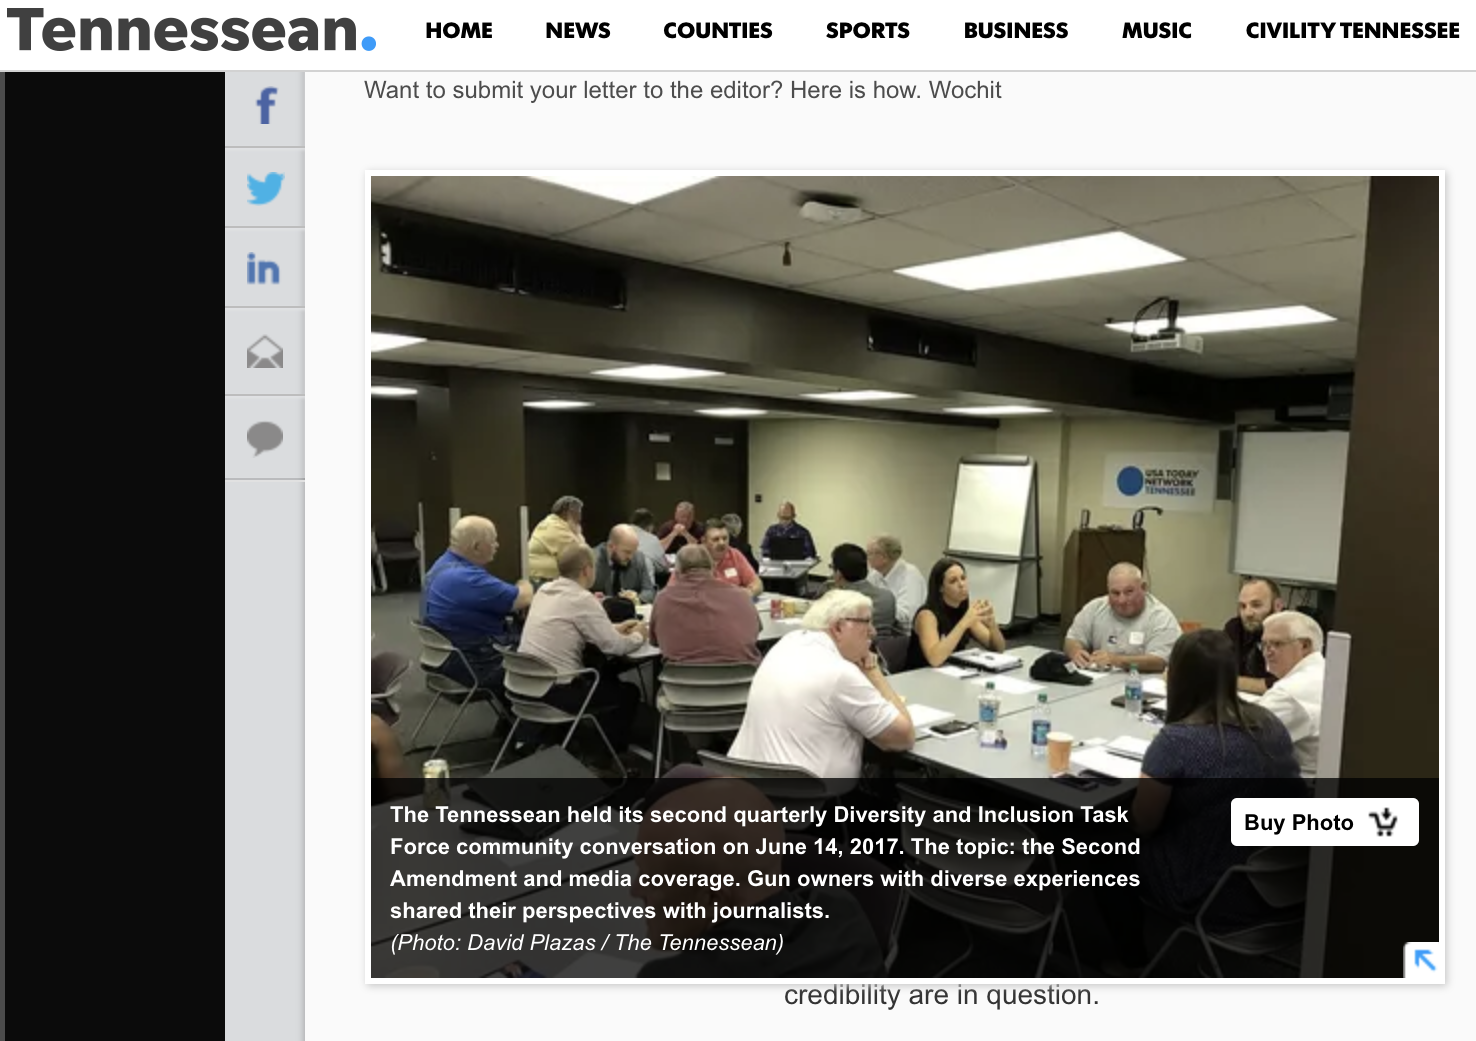 Screenshot from tennessean.com, showing an invitation for more veterans to share their perspectives with the newspaper.